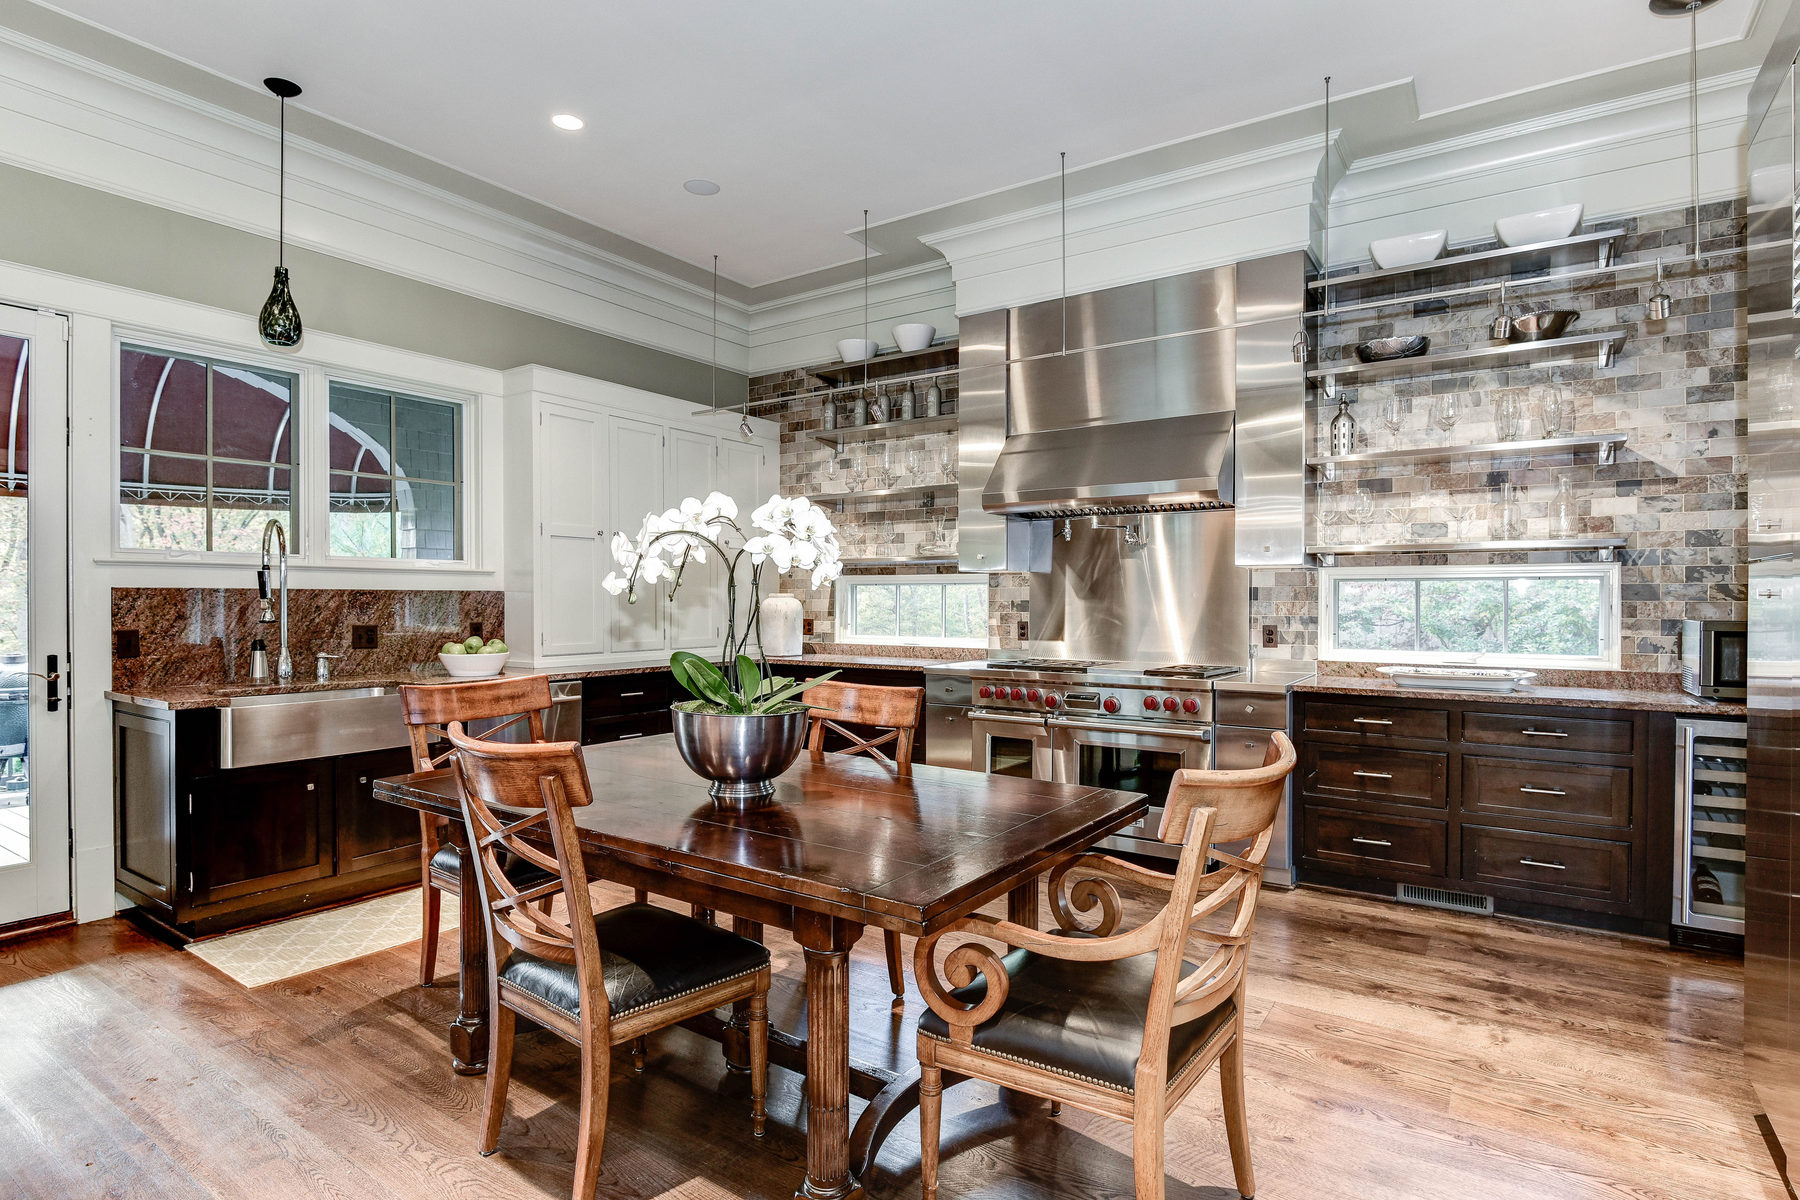 Additional photo for property listing at 412 Chain Bridge Road, Mclean 412 Chain Bridge Rd McLean, Virginia 22101 United States